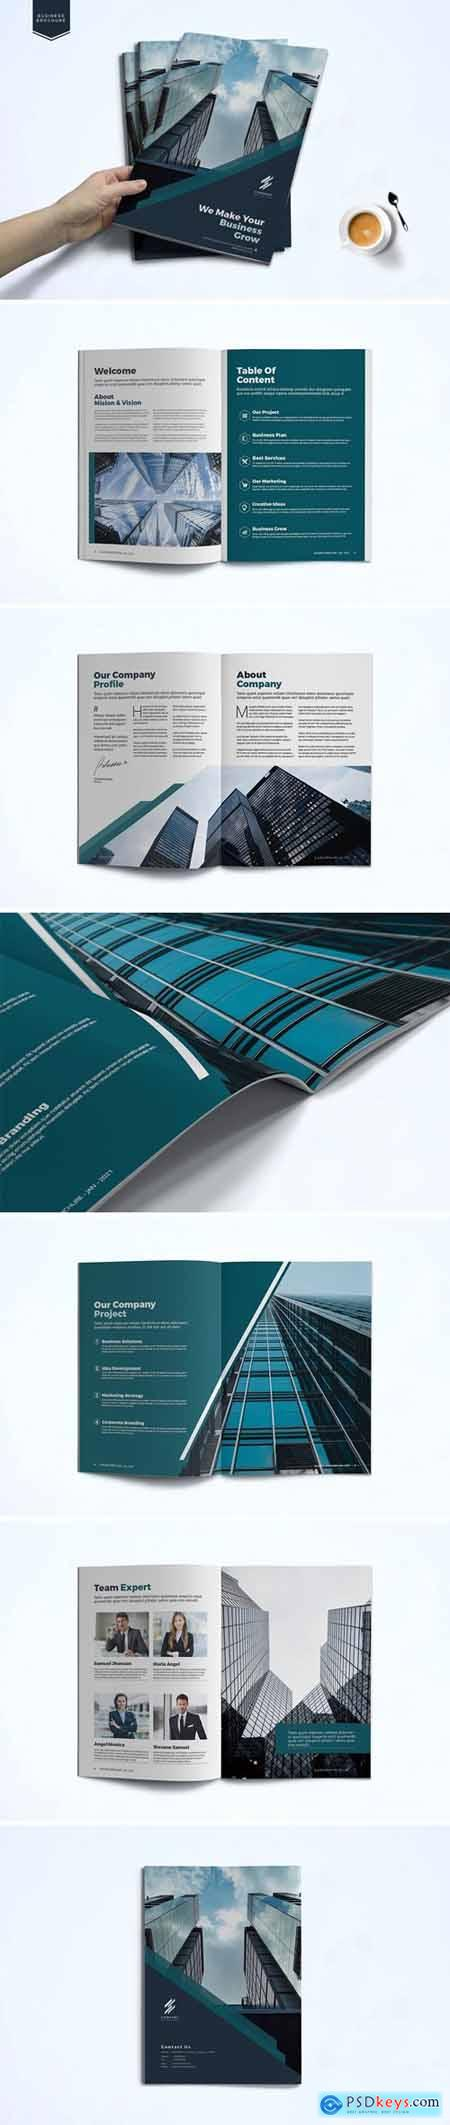 Business Brochure 5GWTR3N